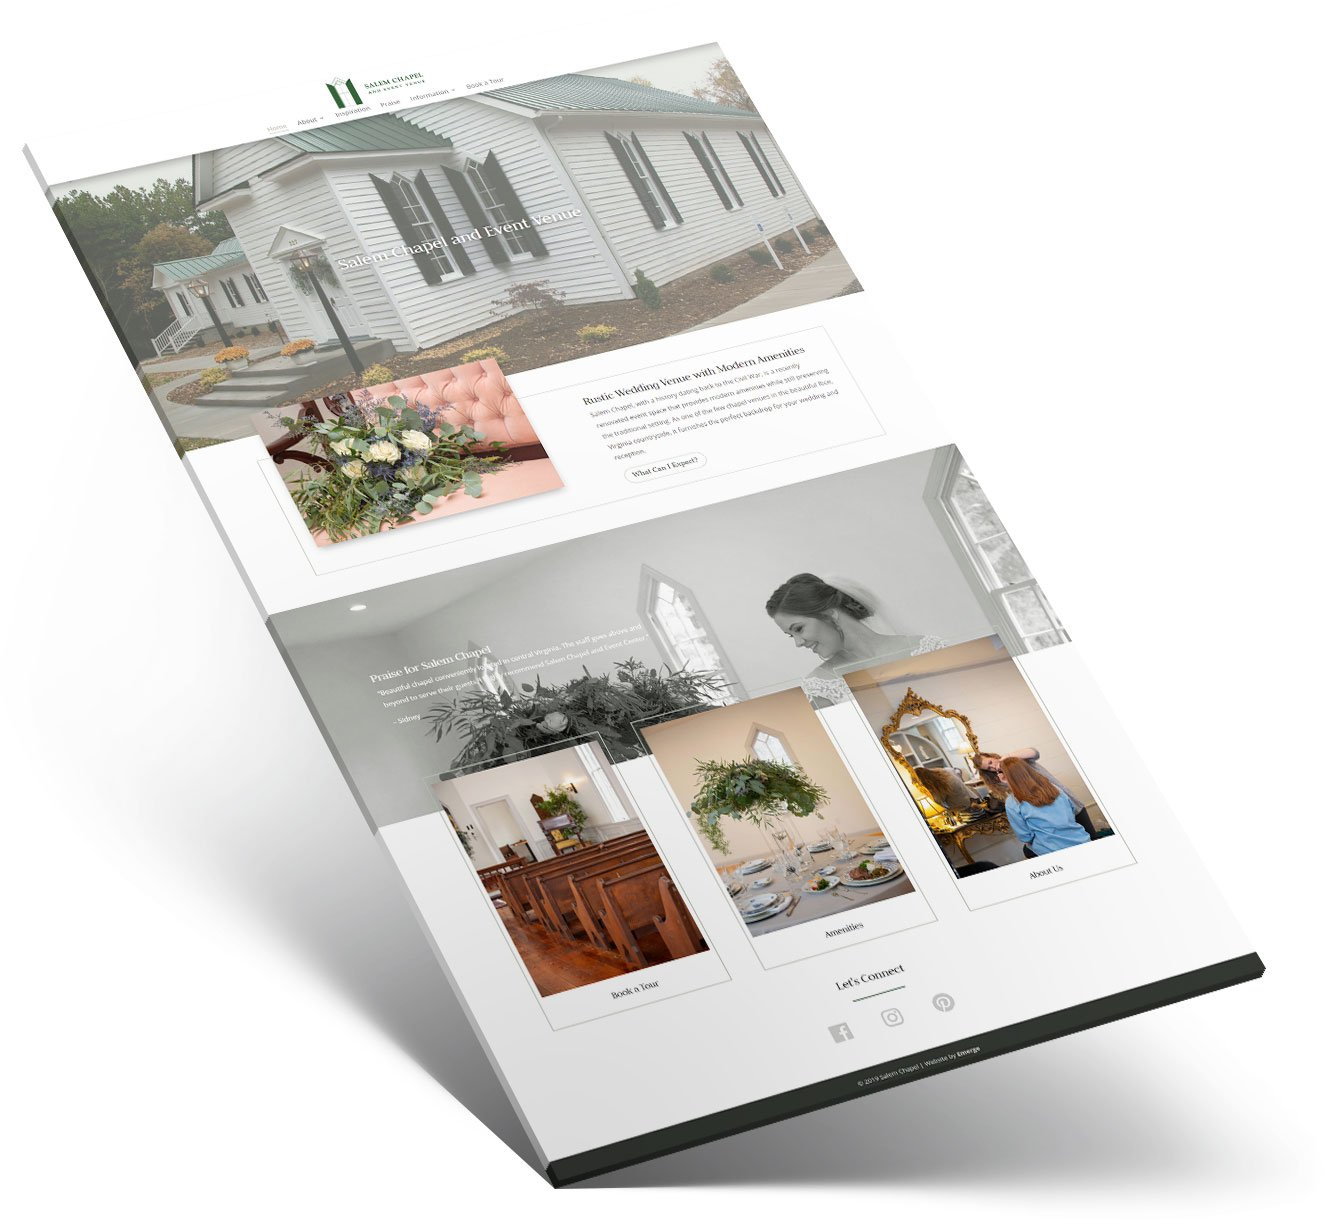 Mockup for Salem Chapel's small business web design layout